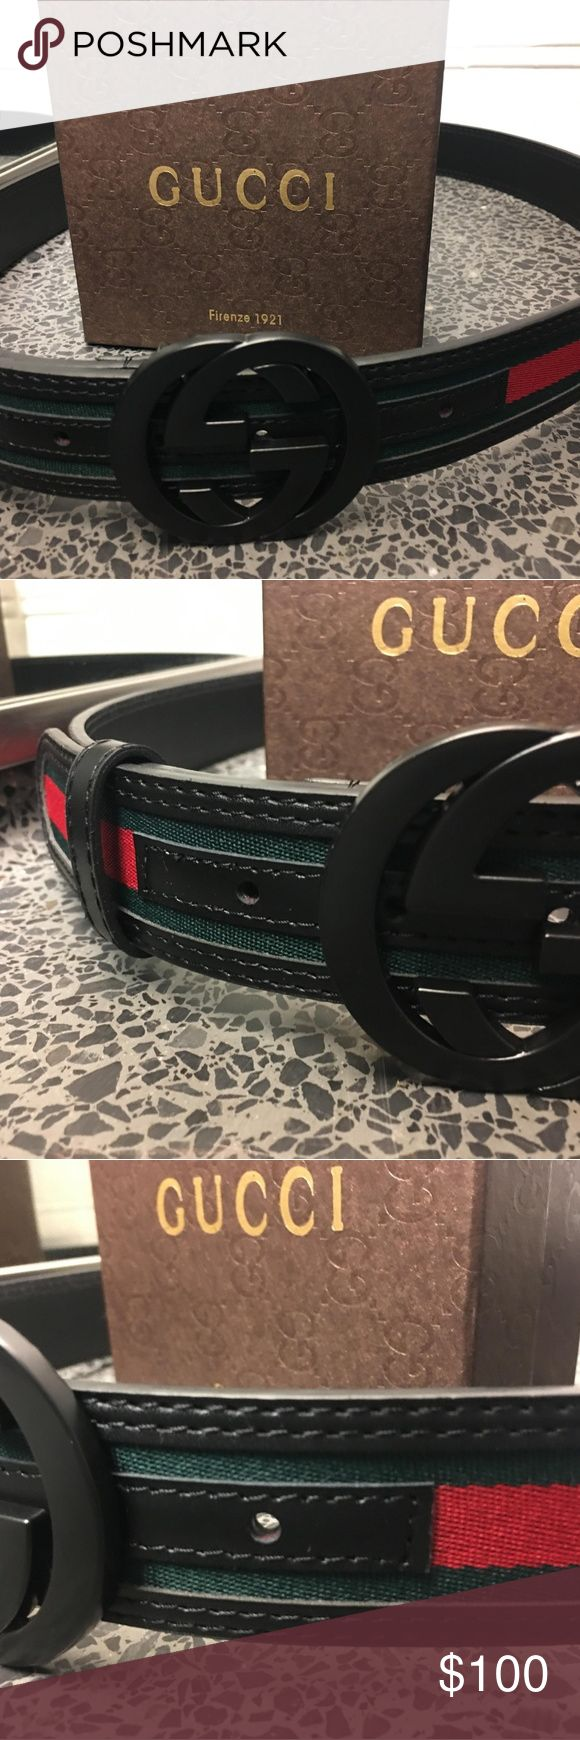 Gucci Belt 📌 Price & Style Answers All Questions 📌 Great Quality For Great Price 📌 Price Is Firm 📌 Size 32 - 36 📌 Comes With Box And Dustbag 📌 Next Day Shipping° 📌 Payment Thru Poshmark App Only  ° Next / Same Day Shipping Excluded On     Weekends Gucci Accessories Belts